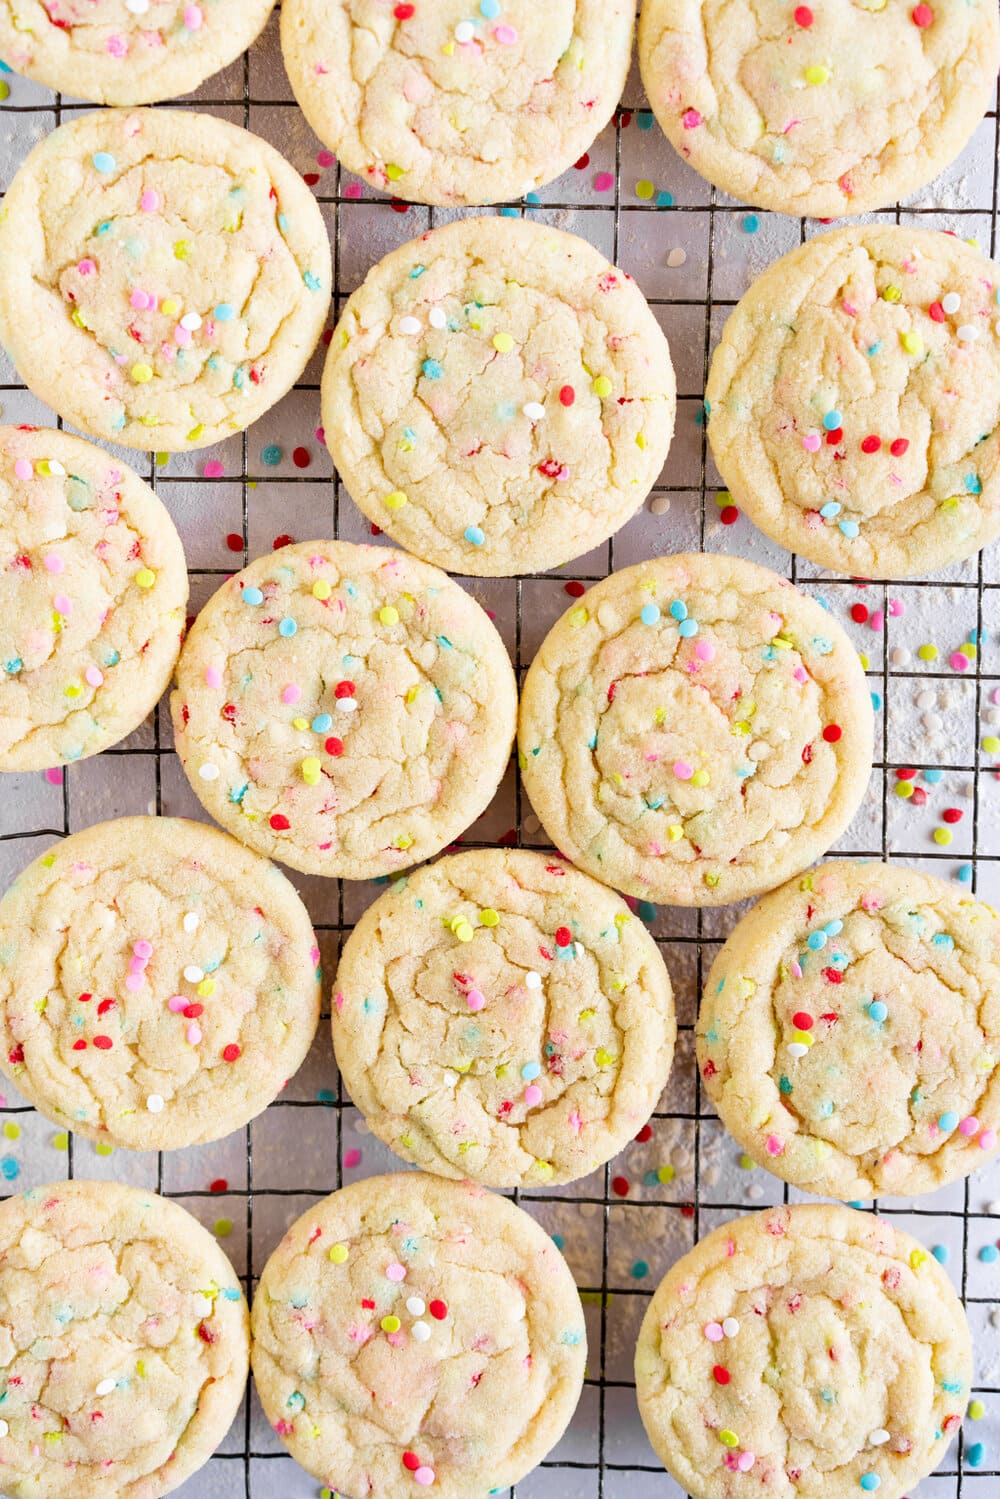 Vanilla Bean Sprinkle Sugar Cookies, AKA funfetti sugar cookies! These vanilla sugar cookies are soft and chewy, and bake up puffy, and are very easy to make with a delicious vanilla bean flavour. They are filled with rainbow sprinkles for a fun and easy take on the classic sugar cookie. They require no resting time, so bake up quickly and keep well.